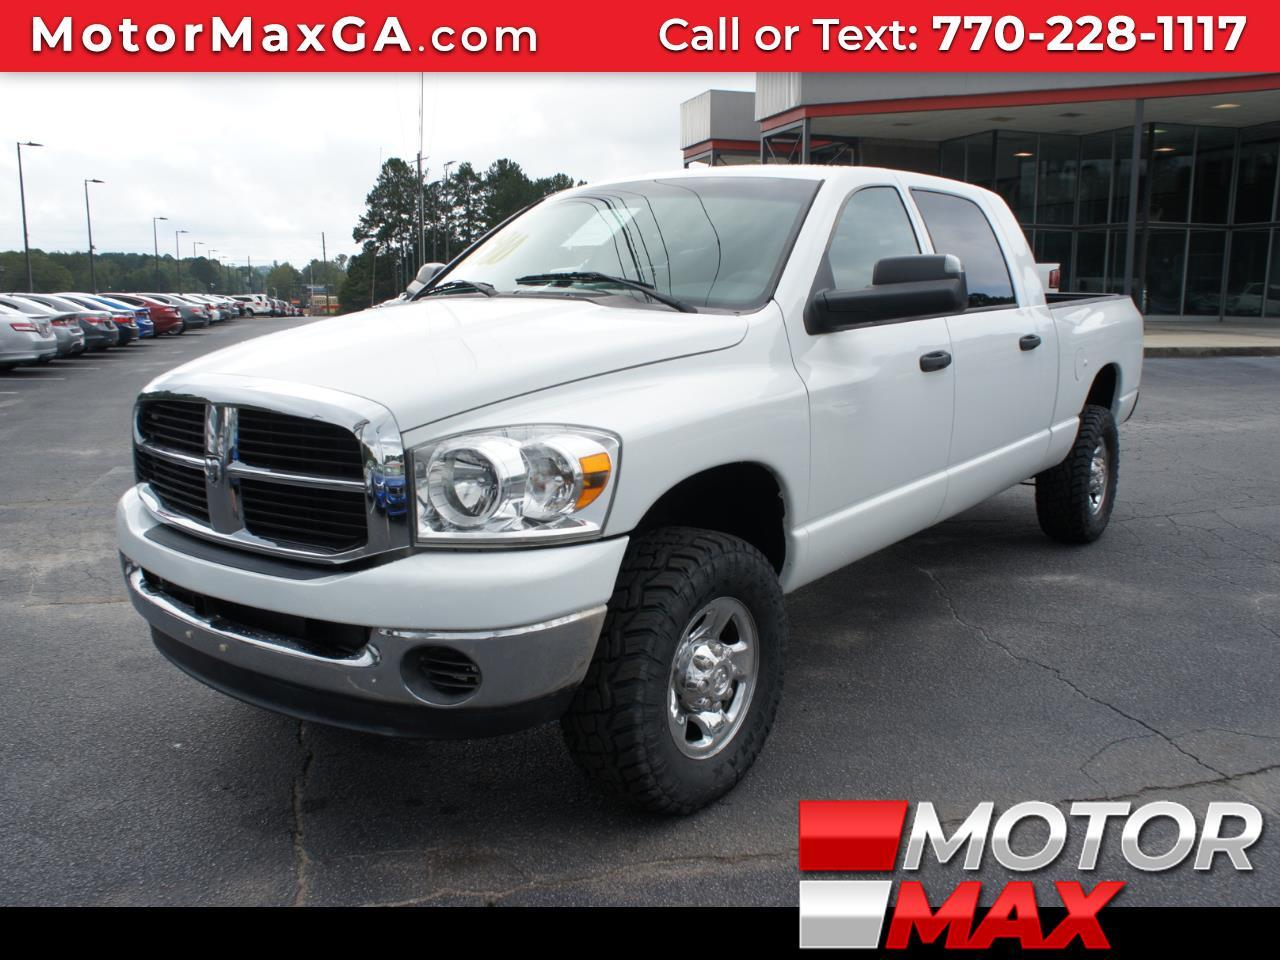 Used 2007 Dodge Ram 2500 Slt Mega Cab 4wd Diesel For Sale In Griffin Ga 30223 Motor Max